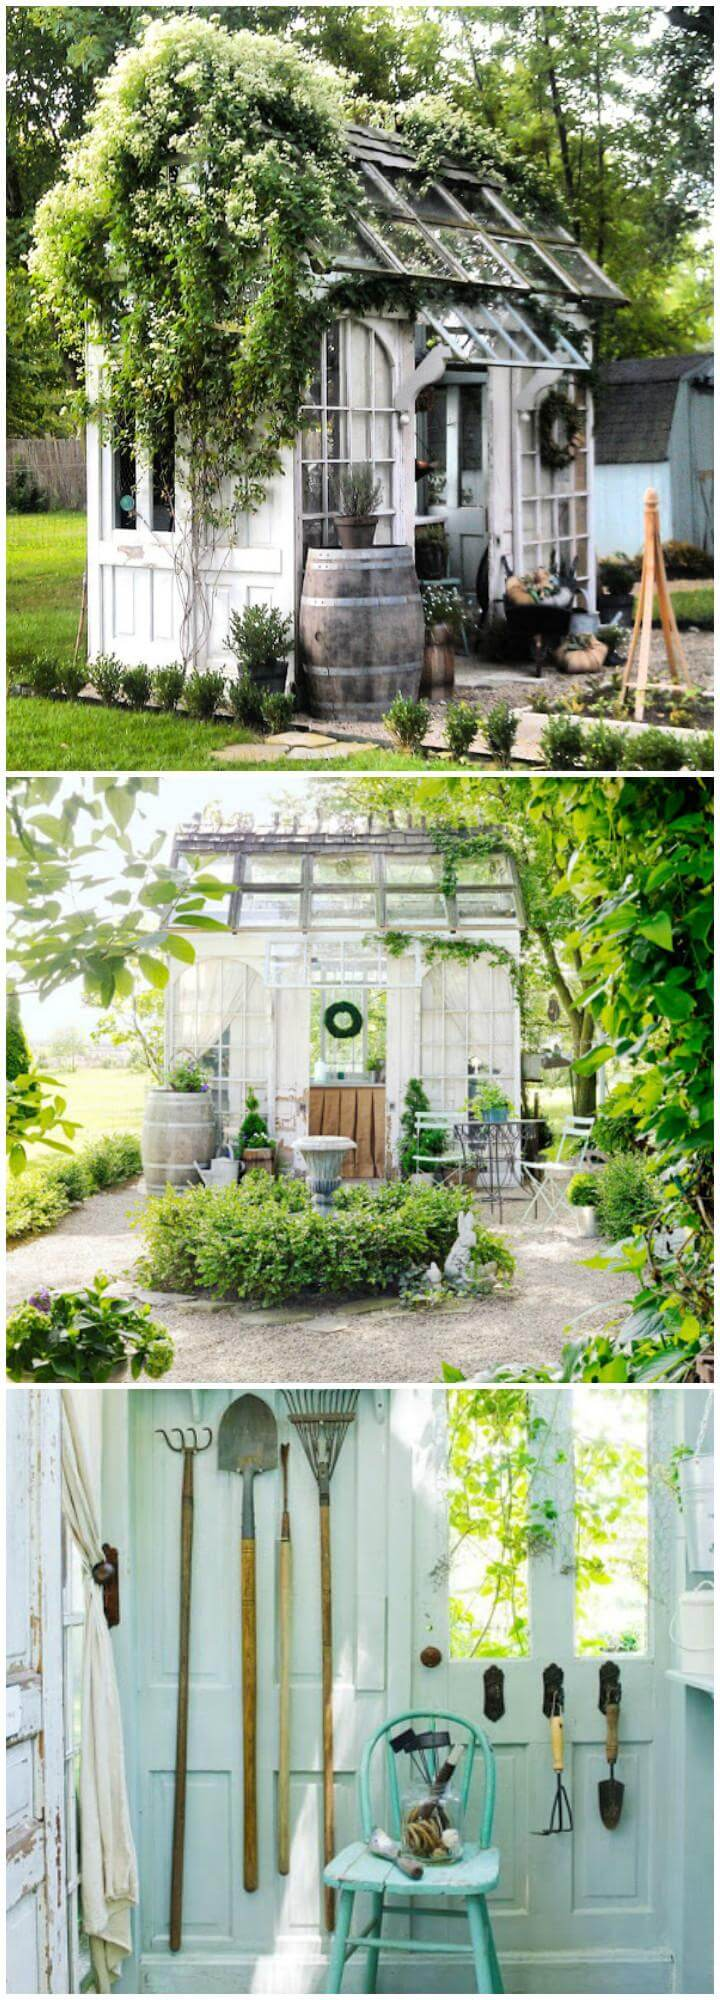 DIY Greenhouse Made of Old Windows and Doors